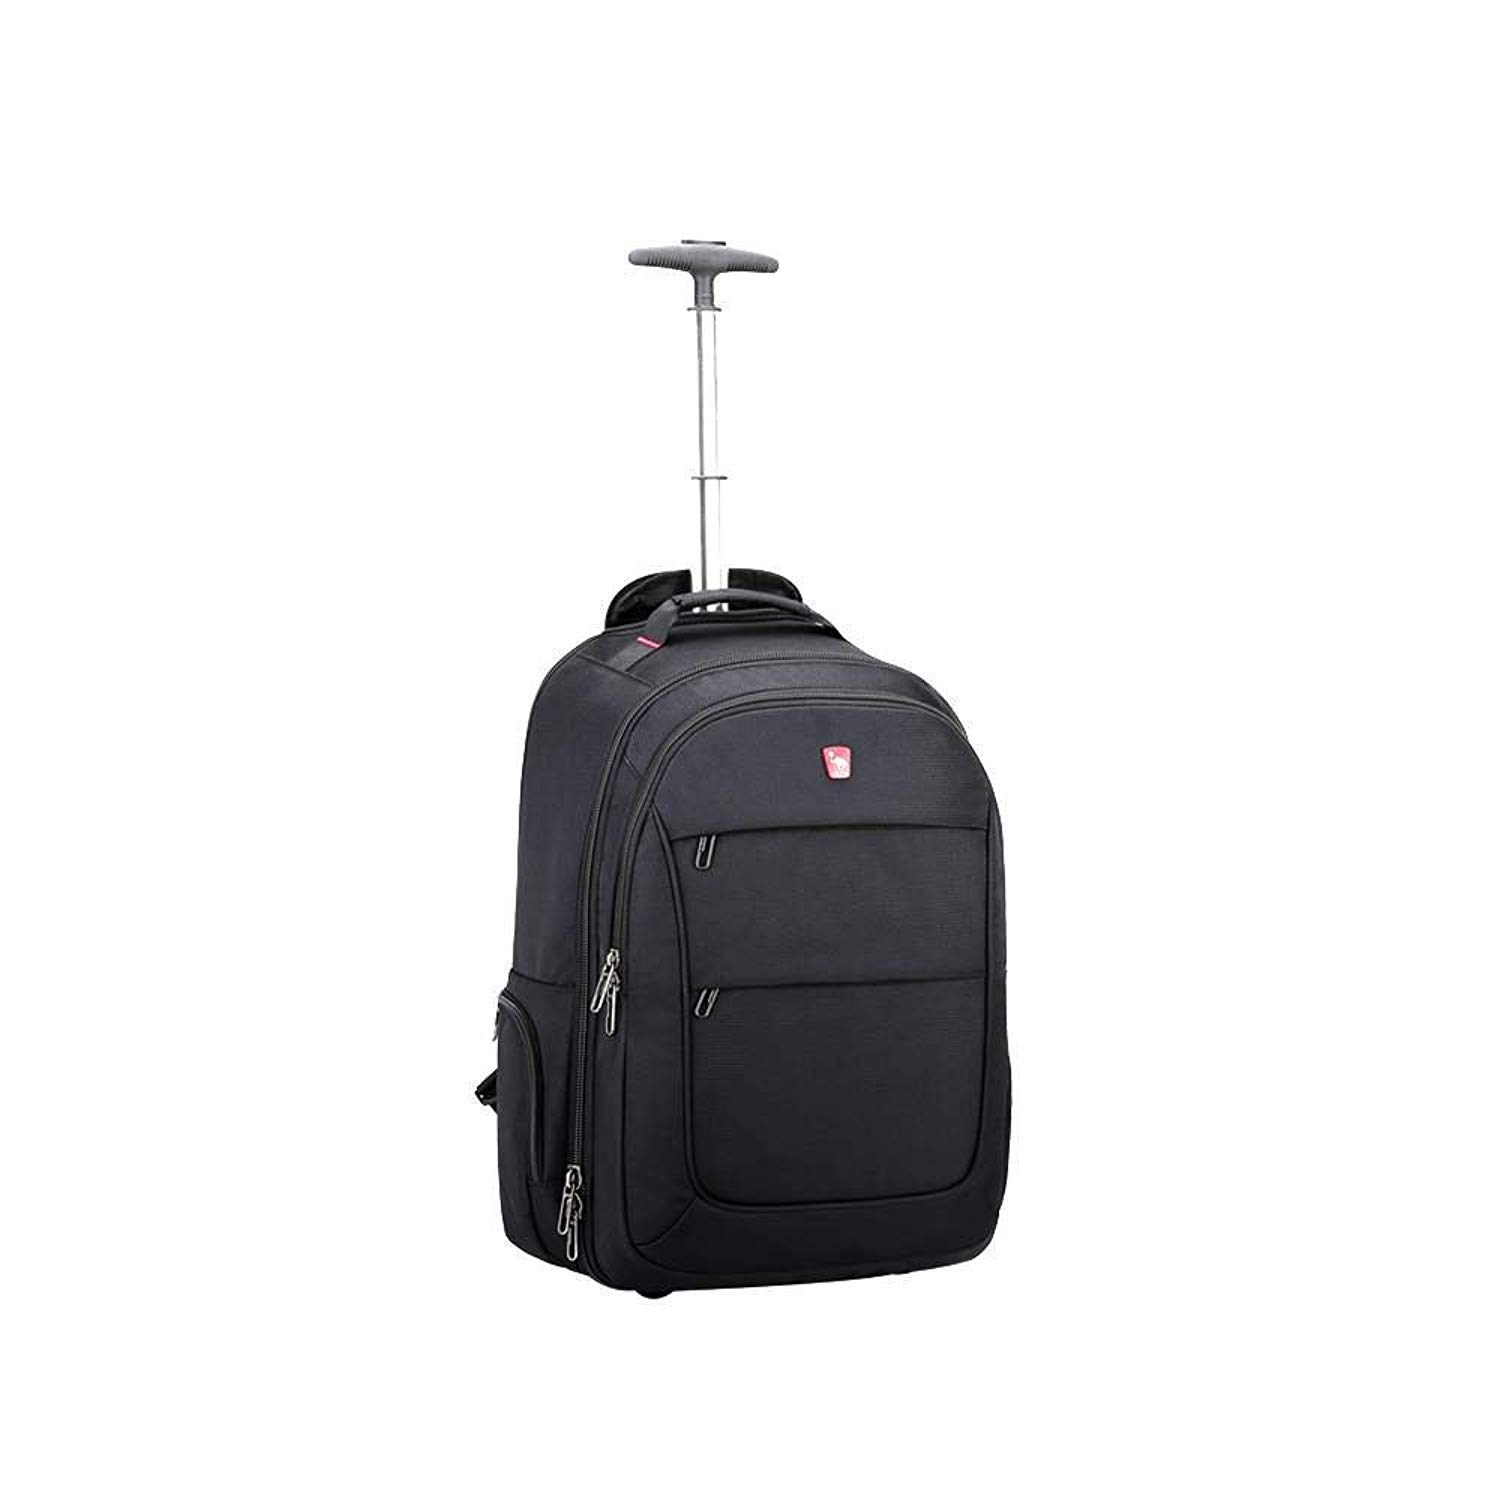 f41daaae9 Get Quotations · OIWAS Wheeled Backpack Waterproof Rolling School Pack  Travel Suitcase For Laptop